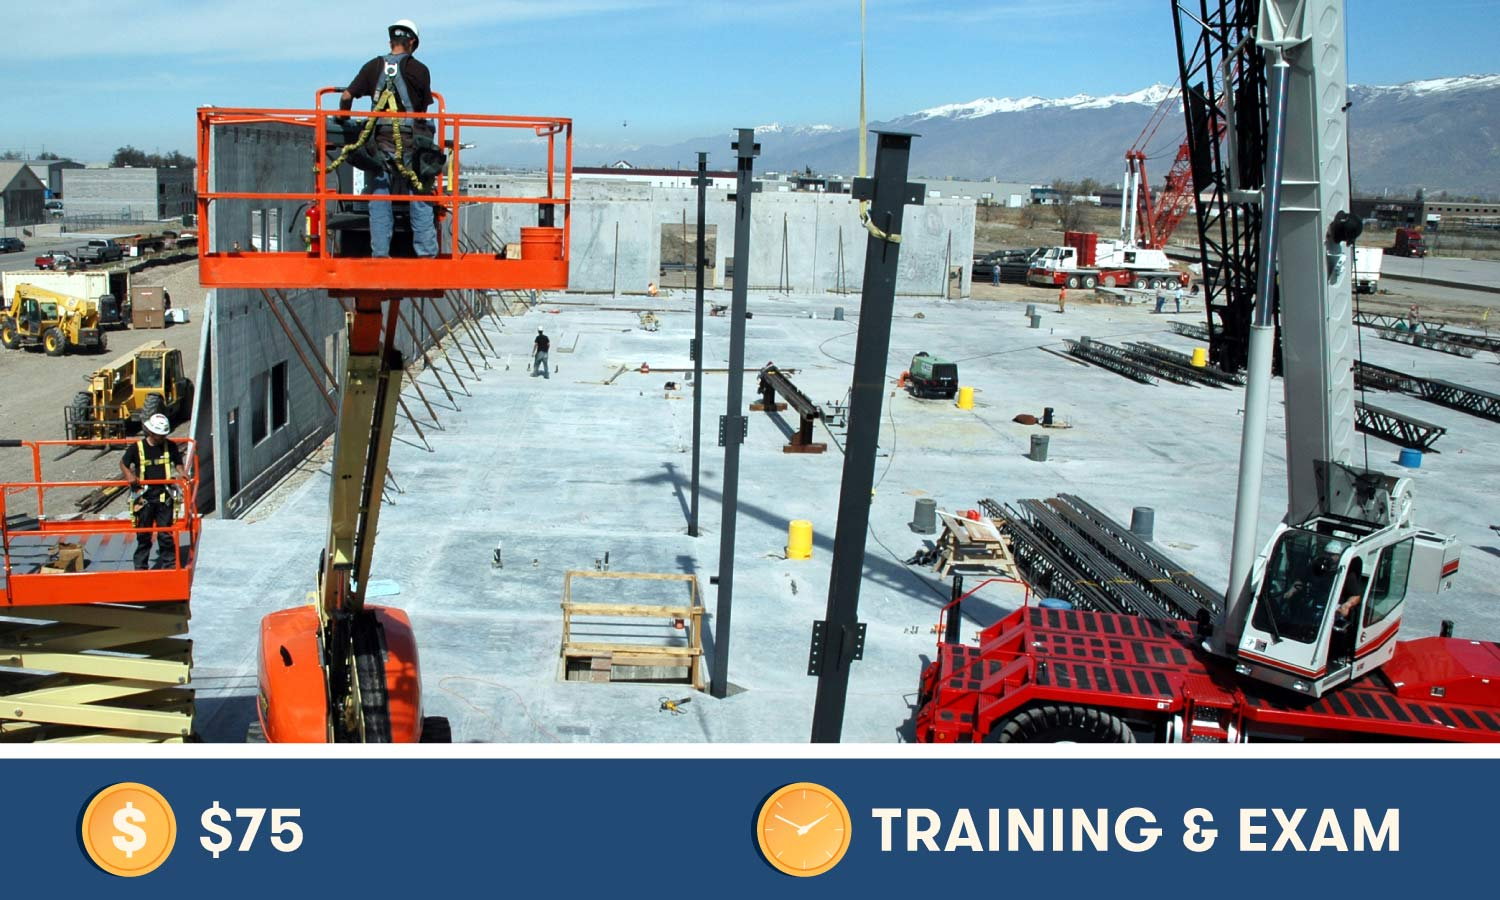 Aerial Lift Training costs $75 and training and exam time varies